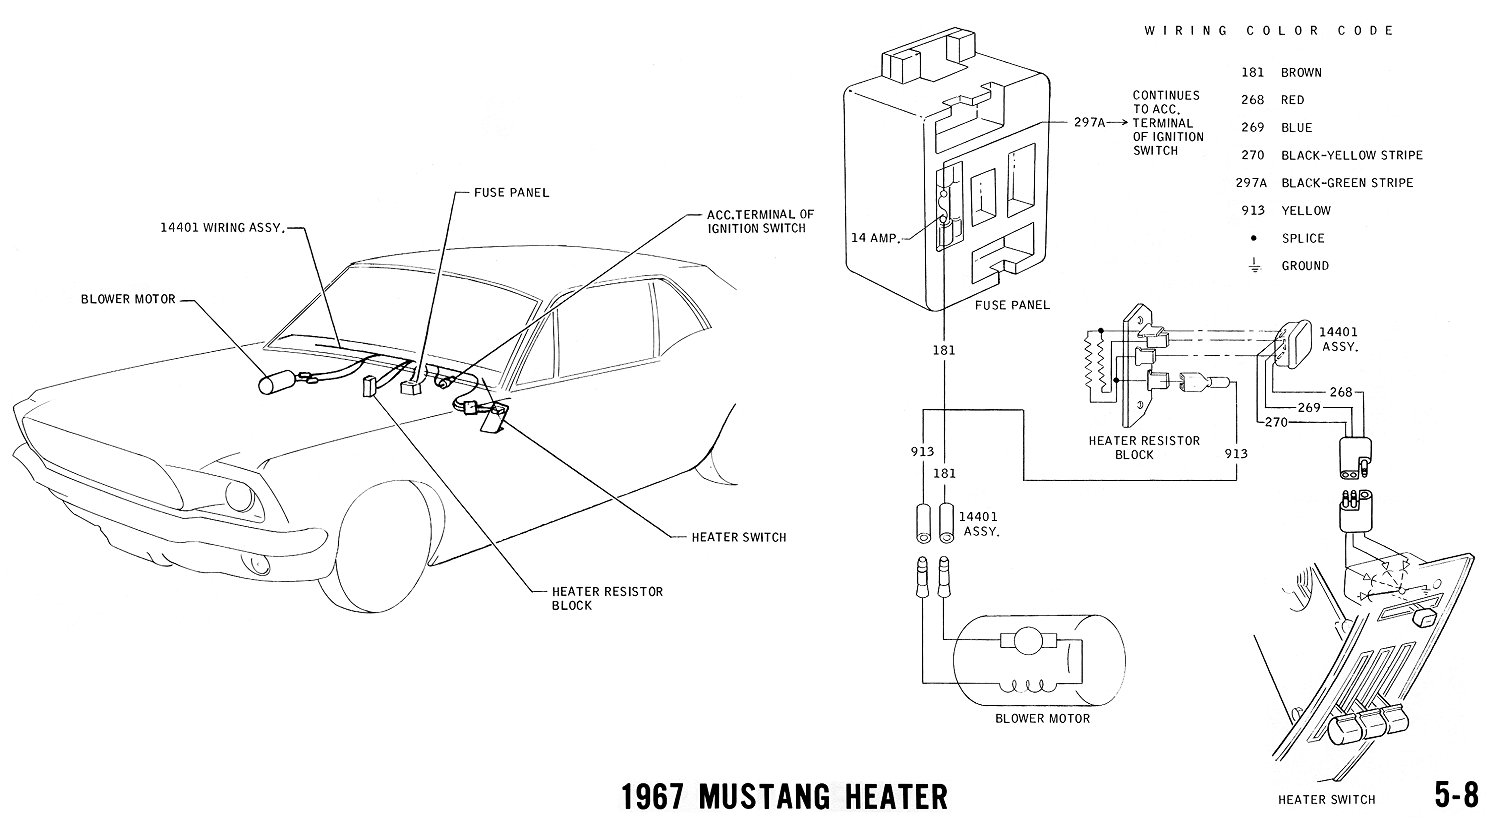 hight resolution of 1966 mustang heater wiring diagram wiring diagrams 1966 mustang alternator belt diagram wiring schematic